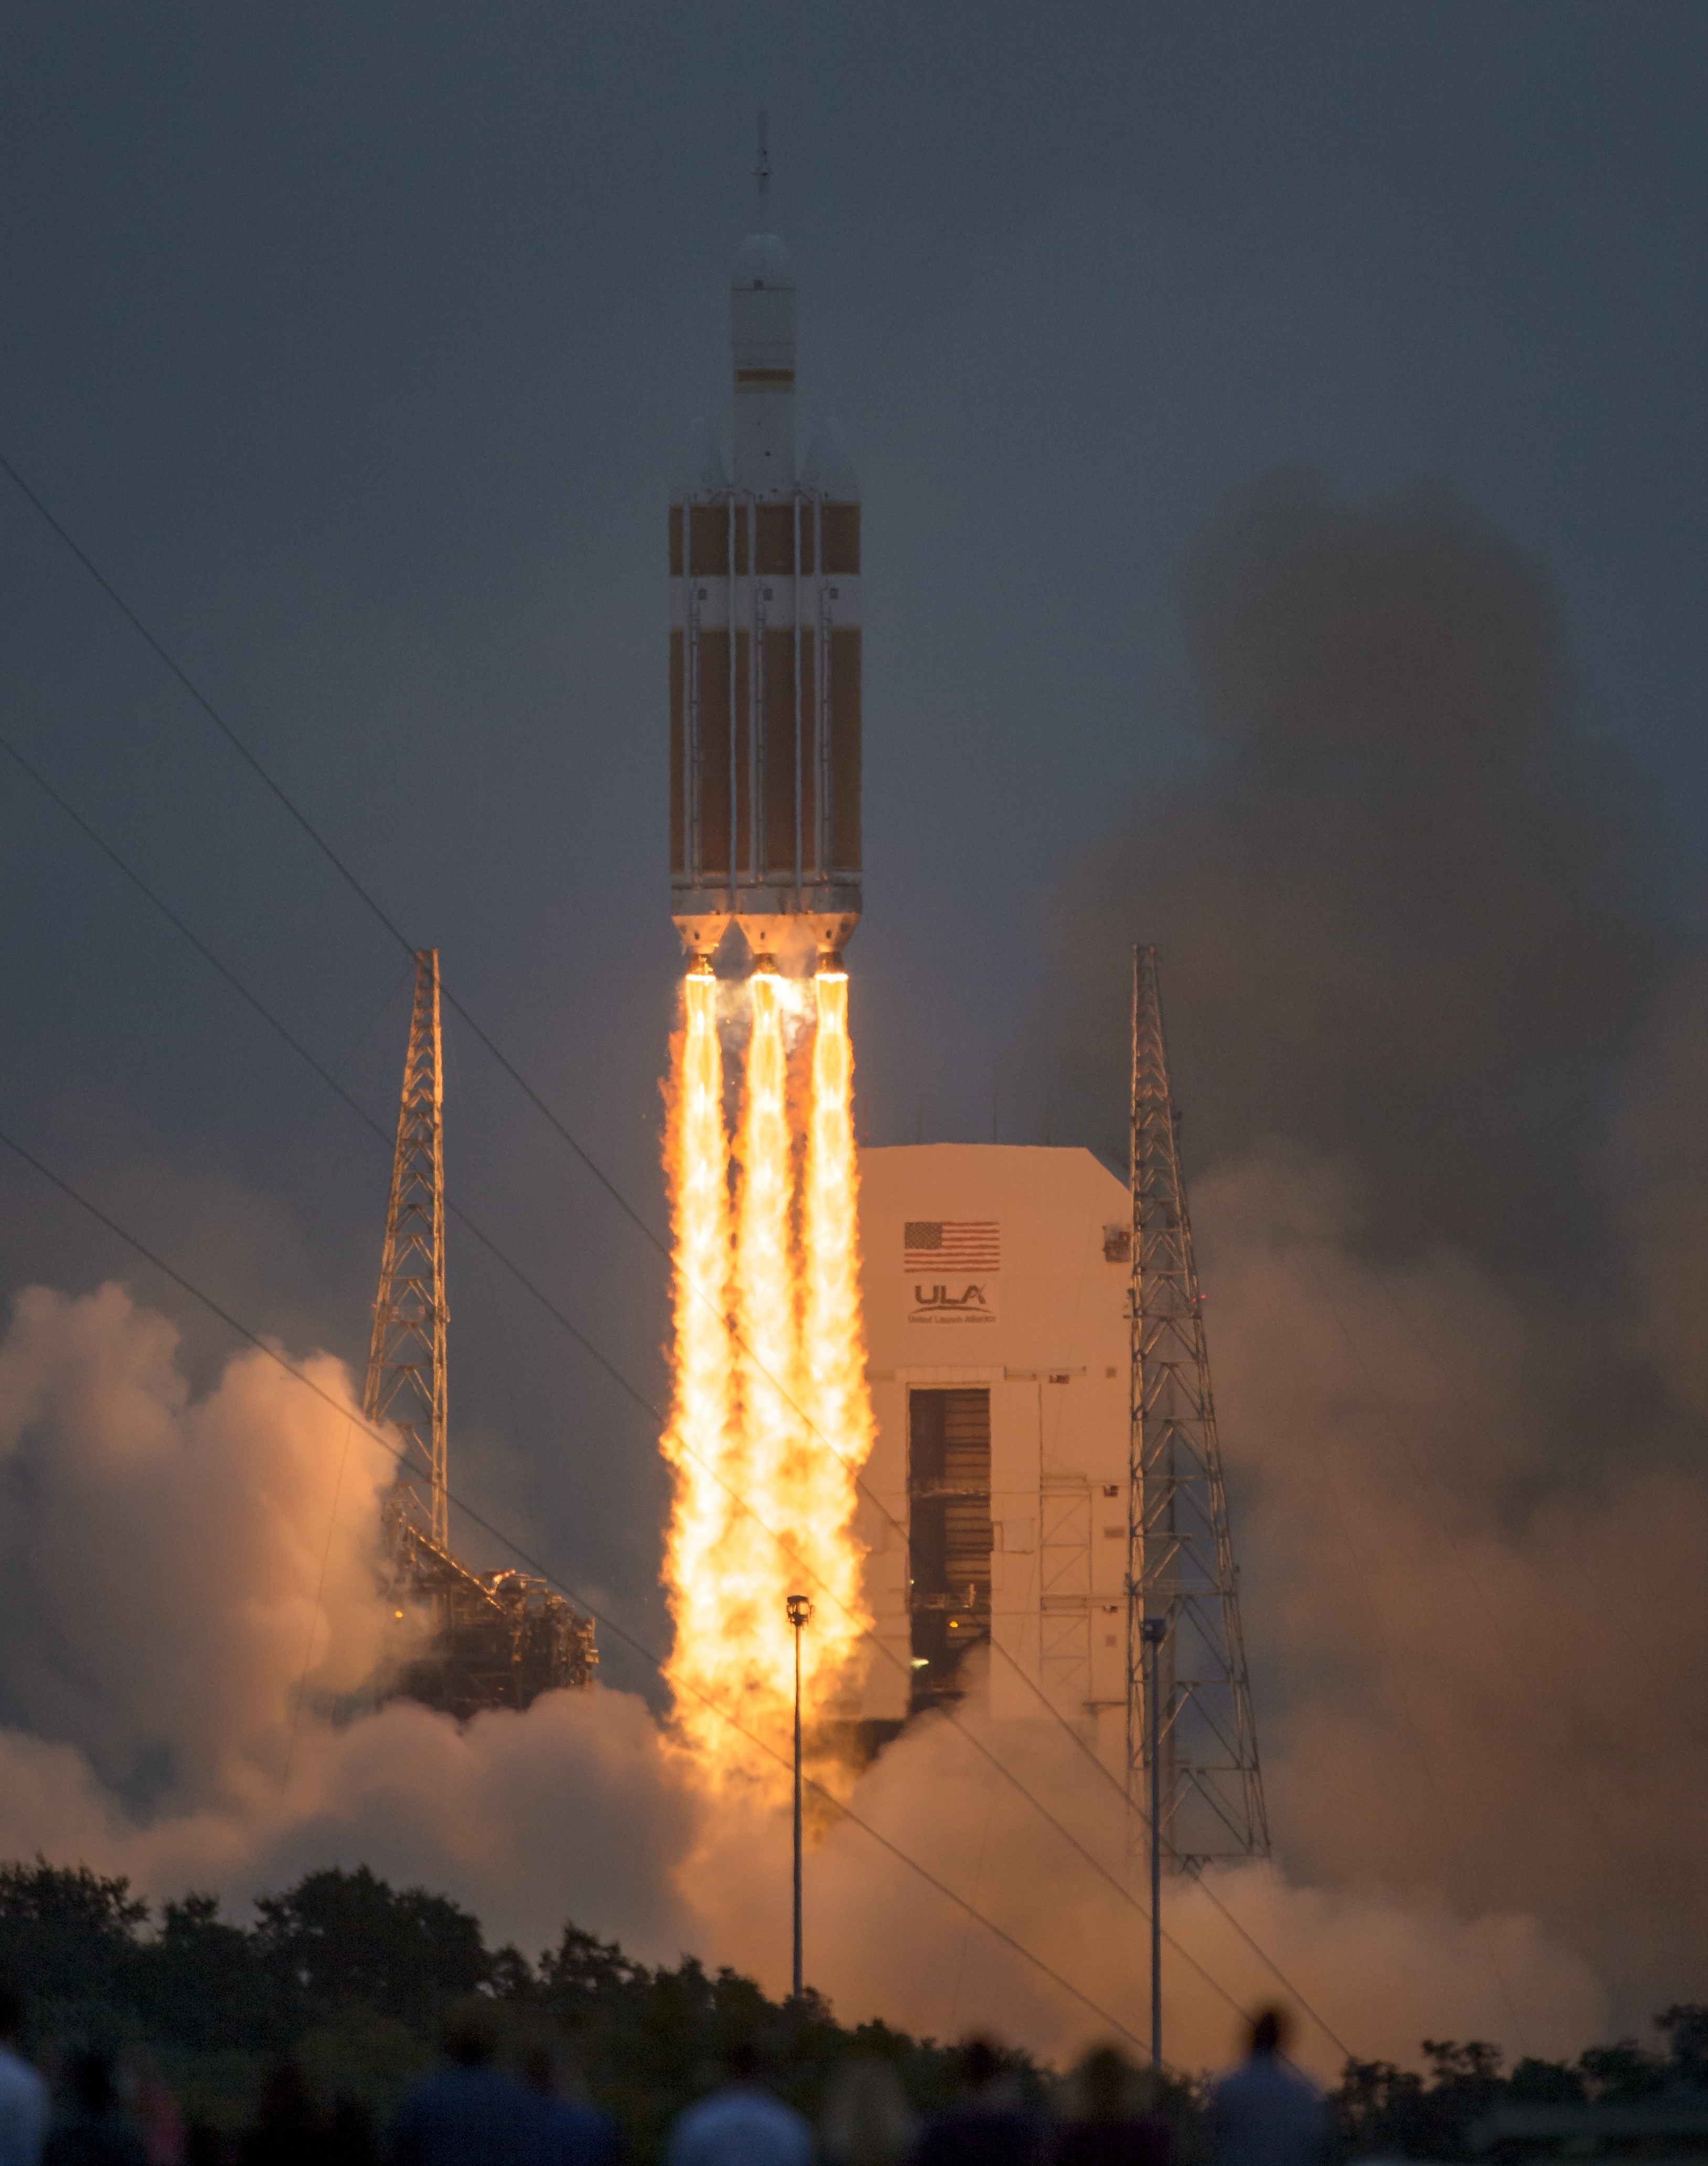 Orion's first test launch at the Kennedy Space Center on Friday. After several delays on Thursday, the launch was rescheduled and successfully took off the following day.